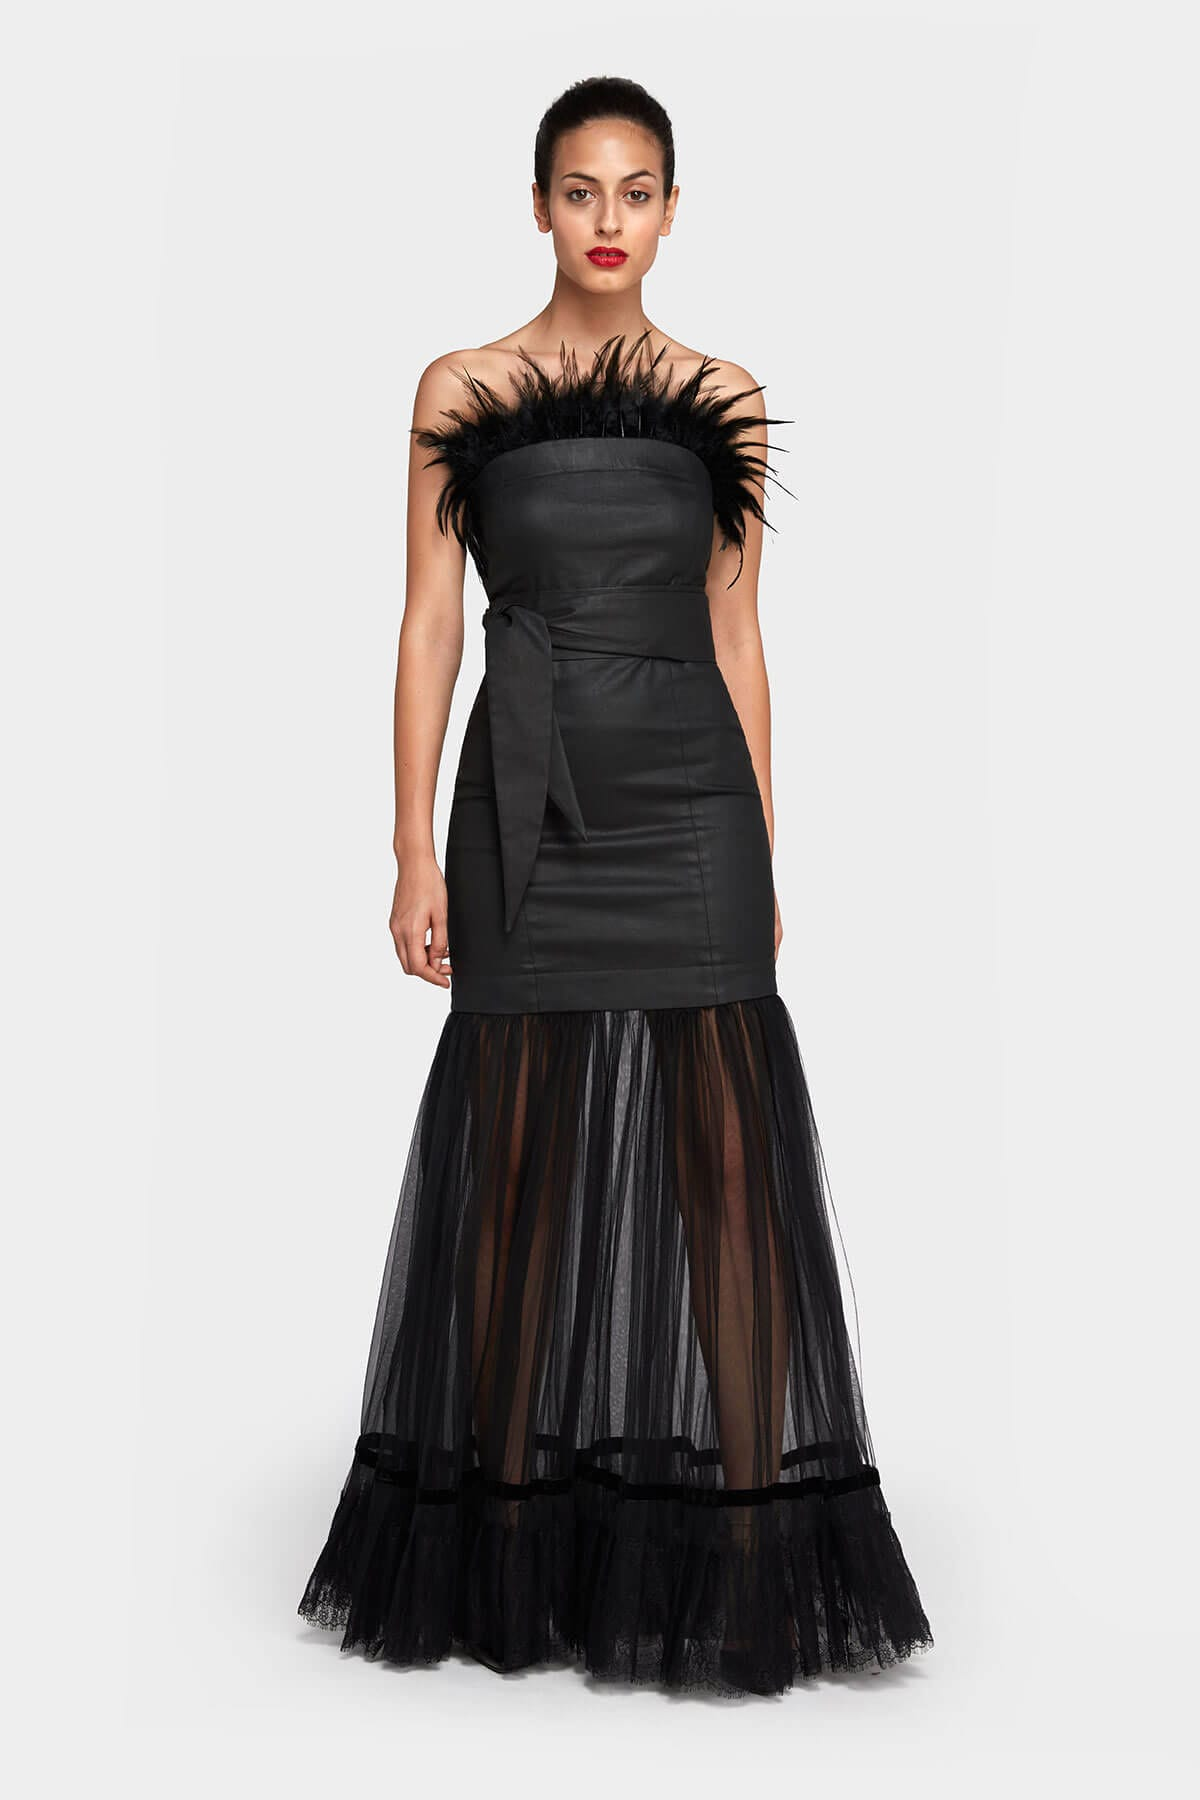 Modular Dress Labbys – Cocktail skirt, Top Feathers & Belt by Laboratory